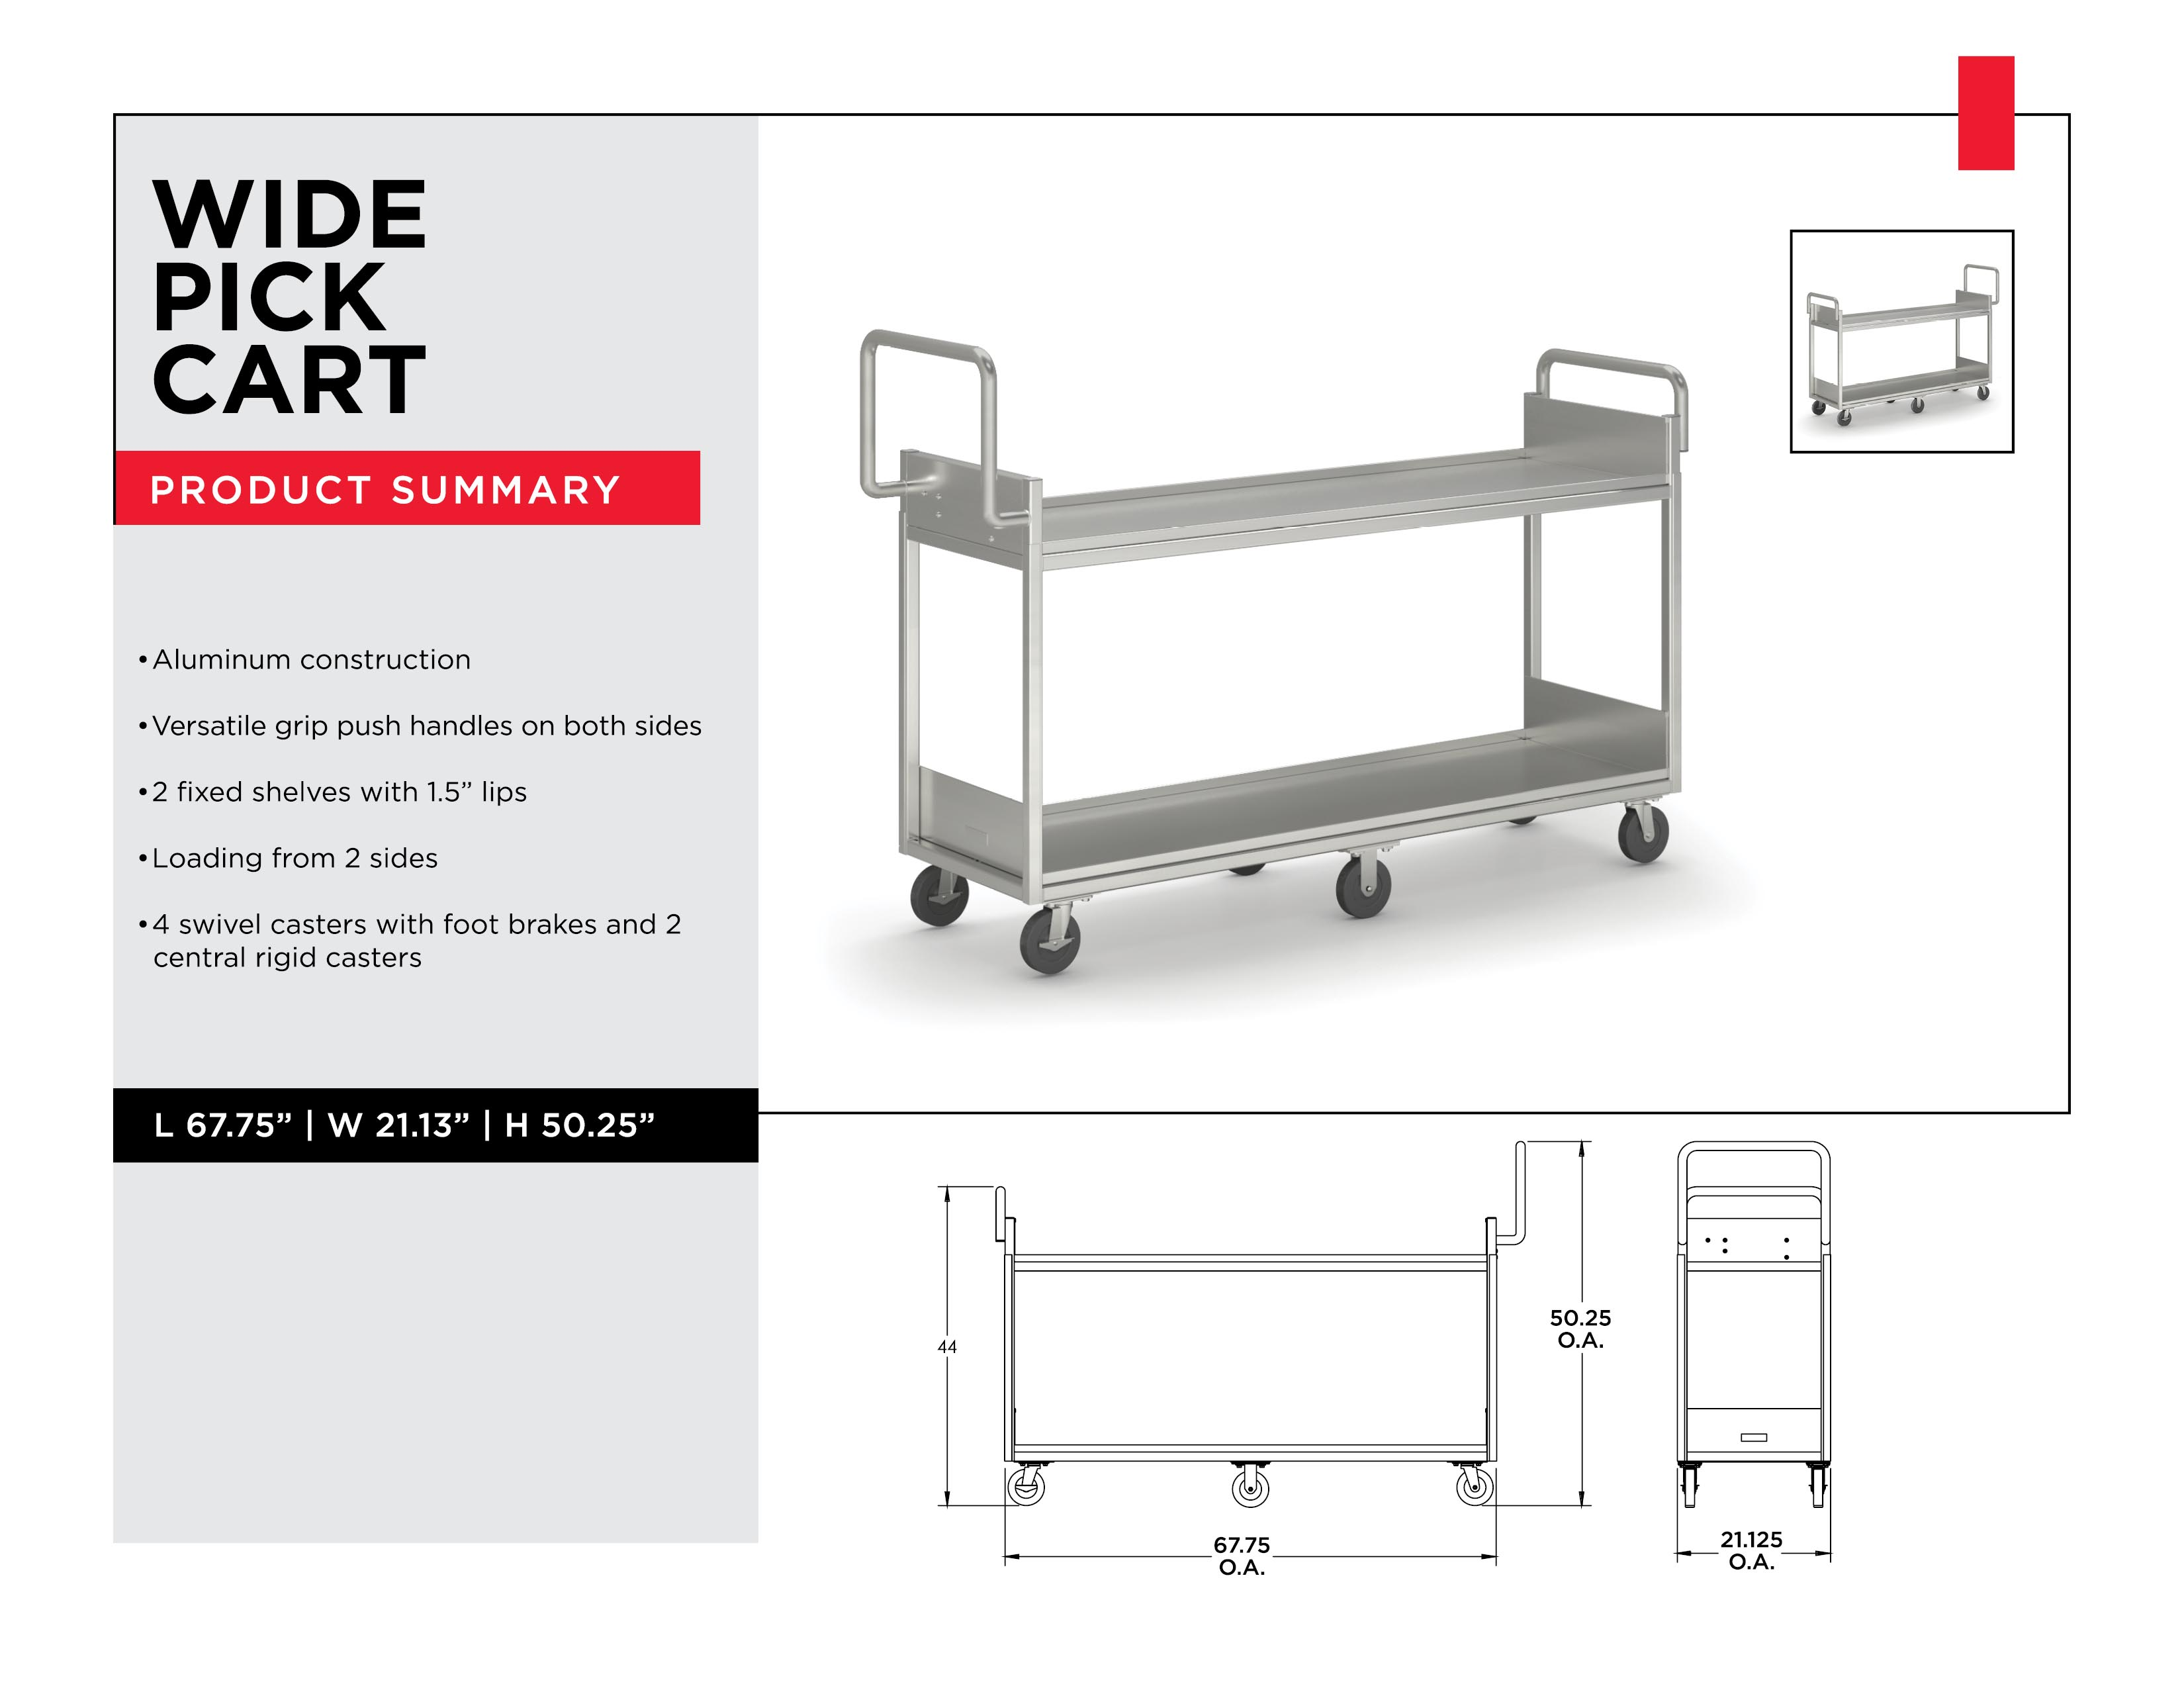 Retail Inventory Management: Wide Pick Cart